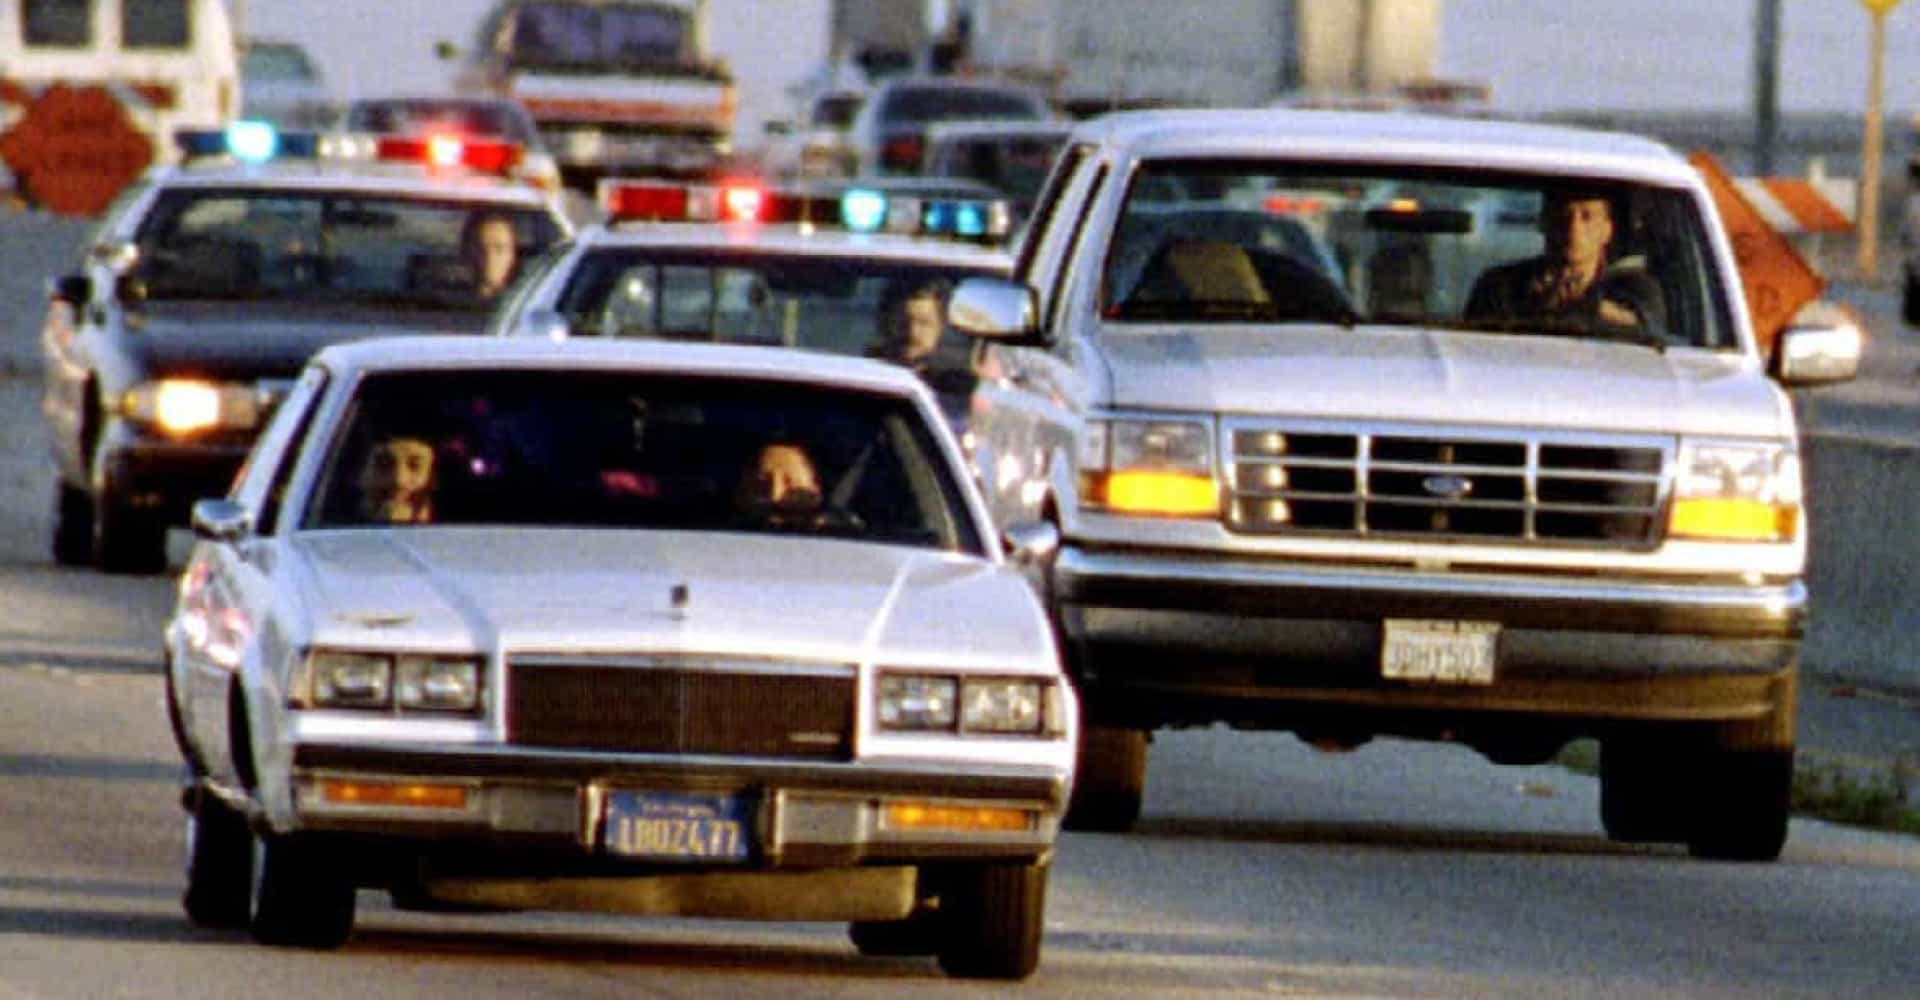 The wildest car chases in history